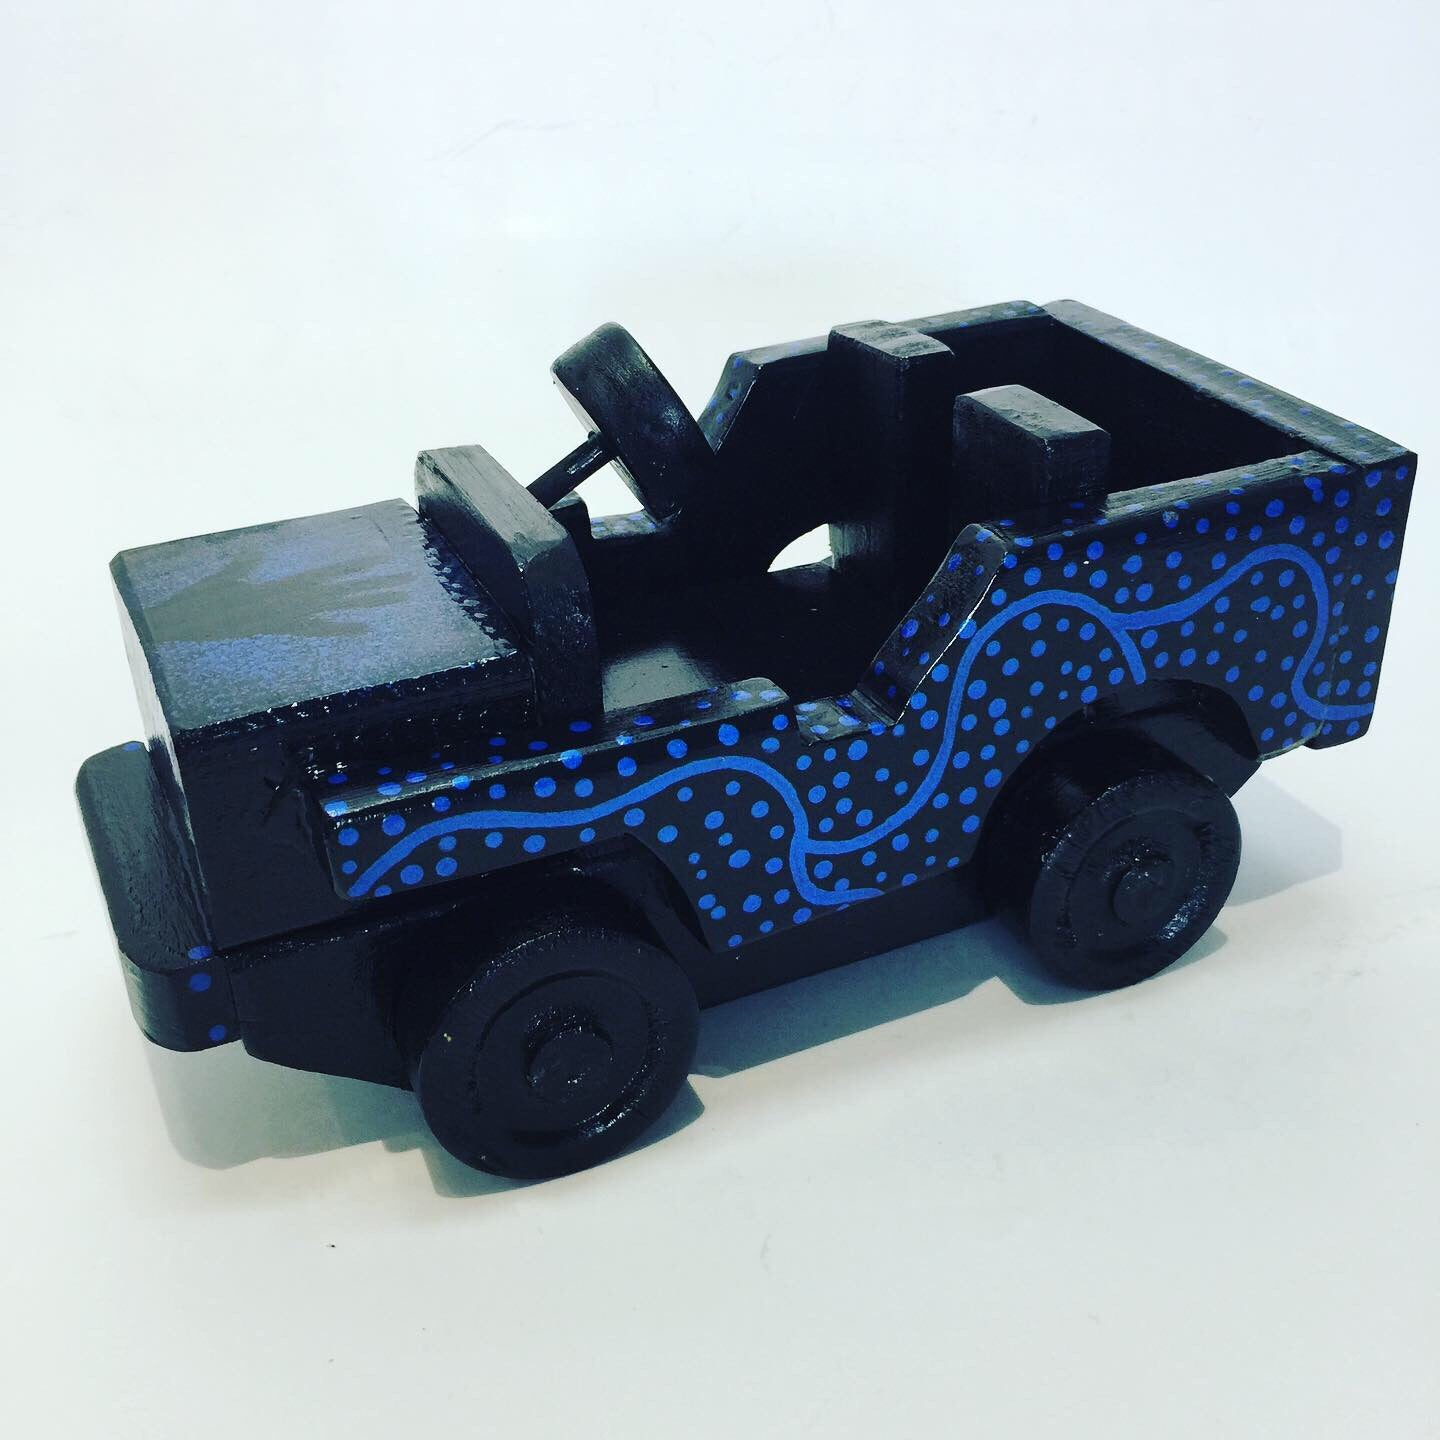 Jeep | Black & Metallic Blue Indigenous Designs